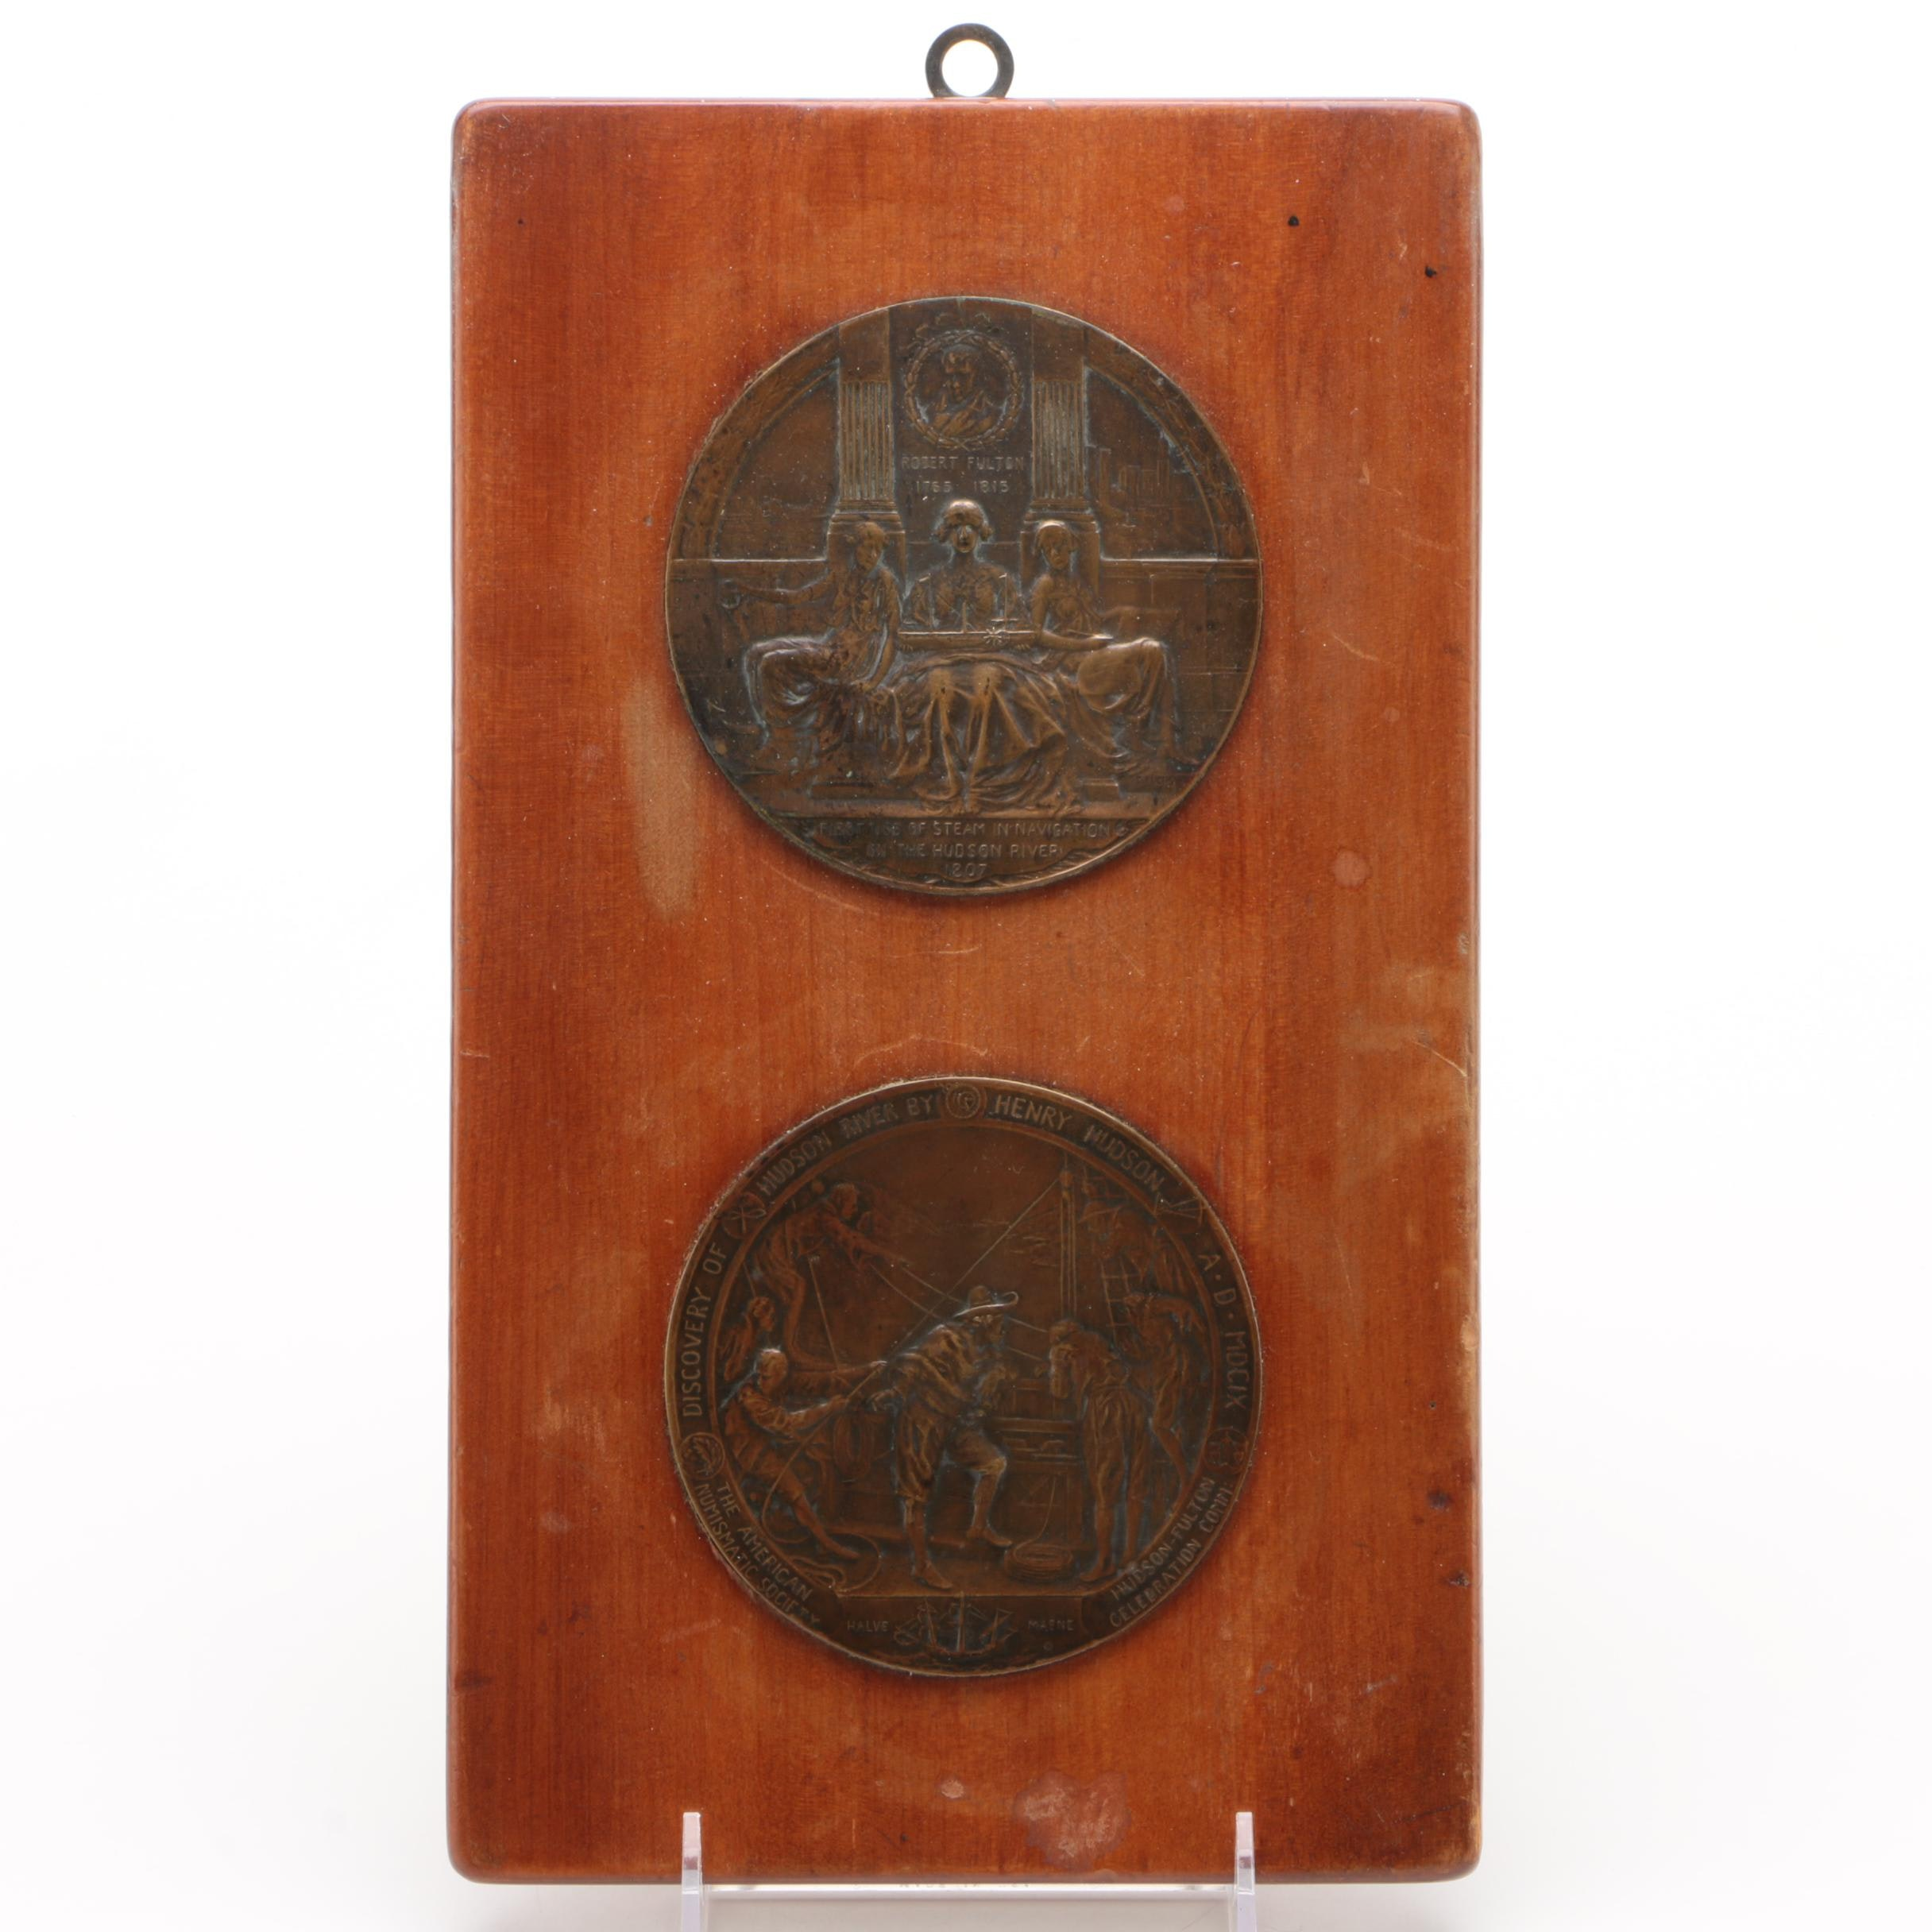 Mounted Hudson-Fulton Celebration Bronze Medals by Emil Fuchs, 1909